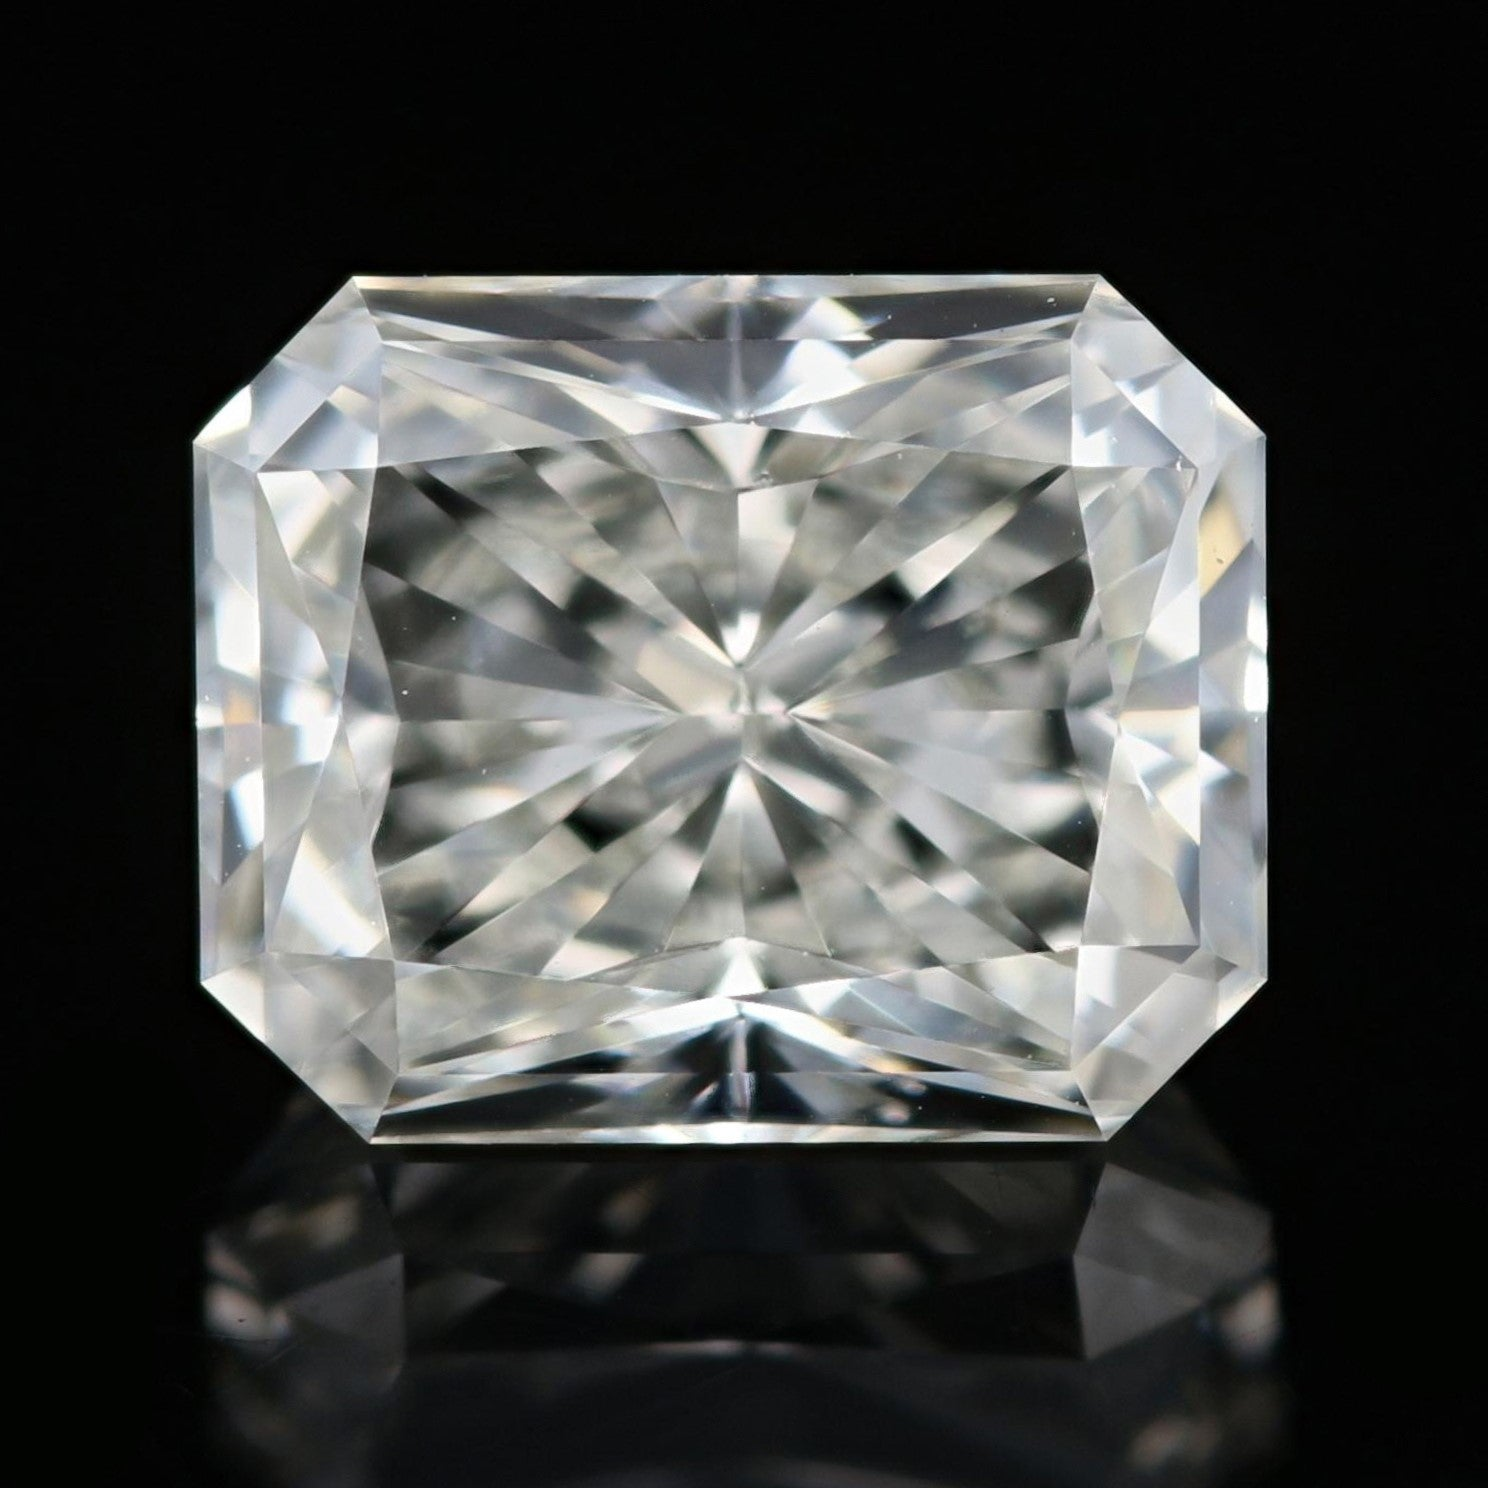 2.01ct Loose Diamond Radiant GIA